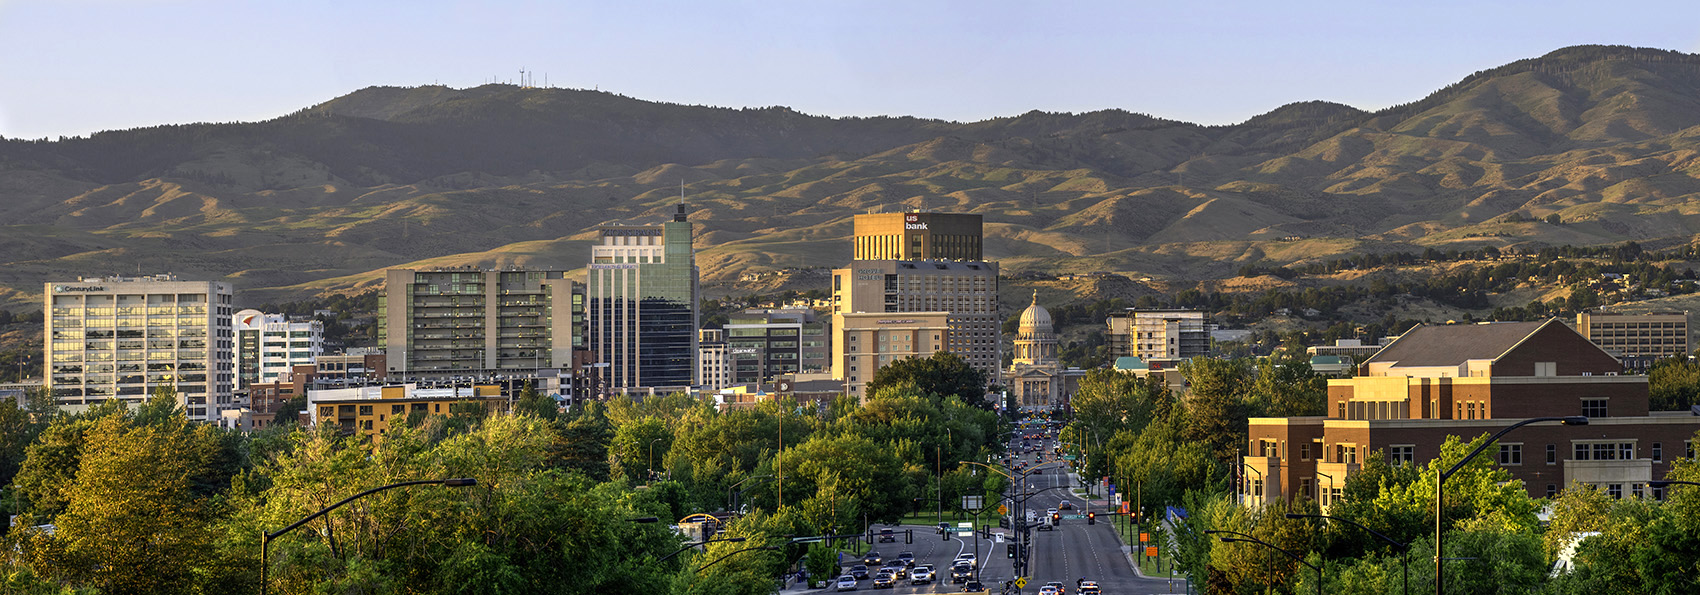 Boise, Idaho Downtown Photo